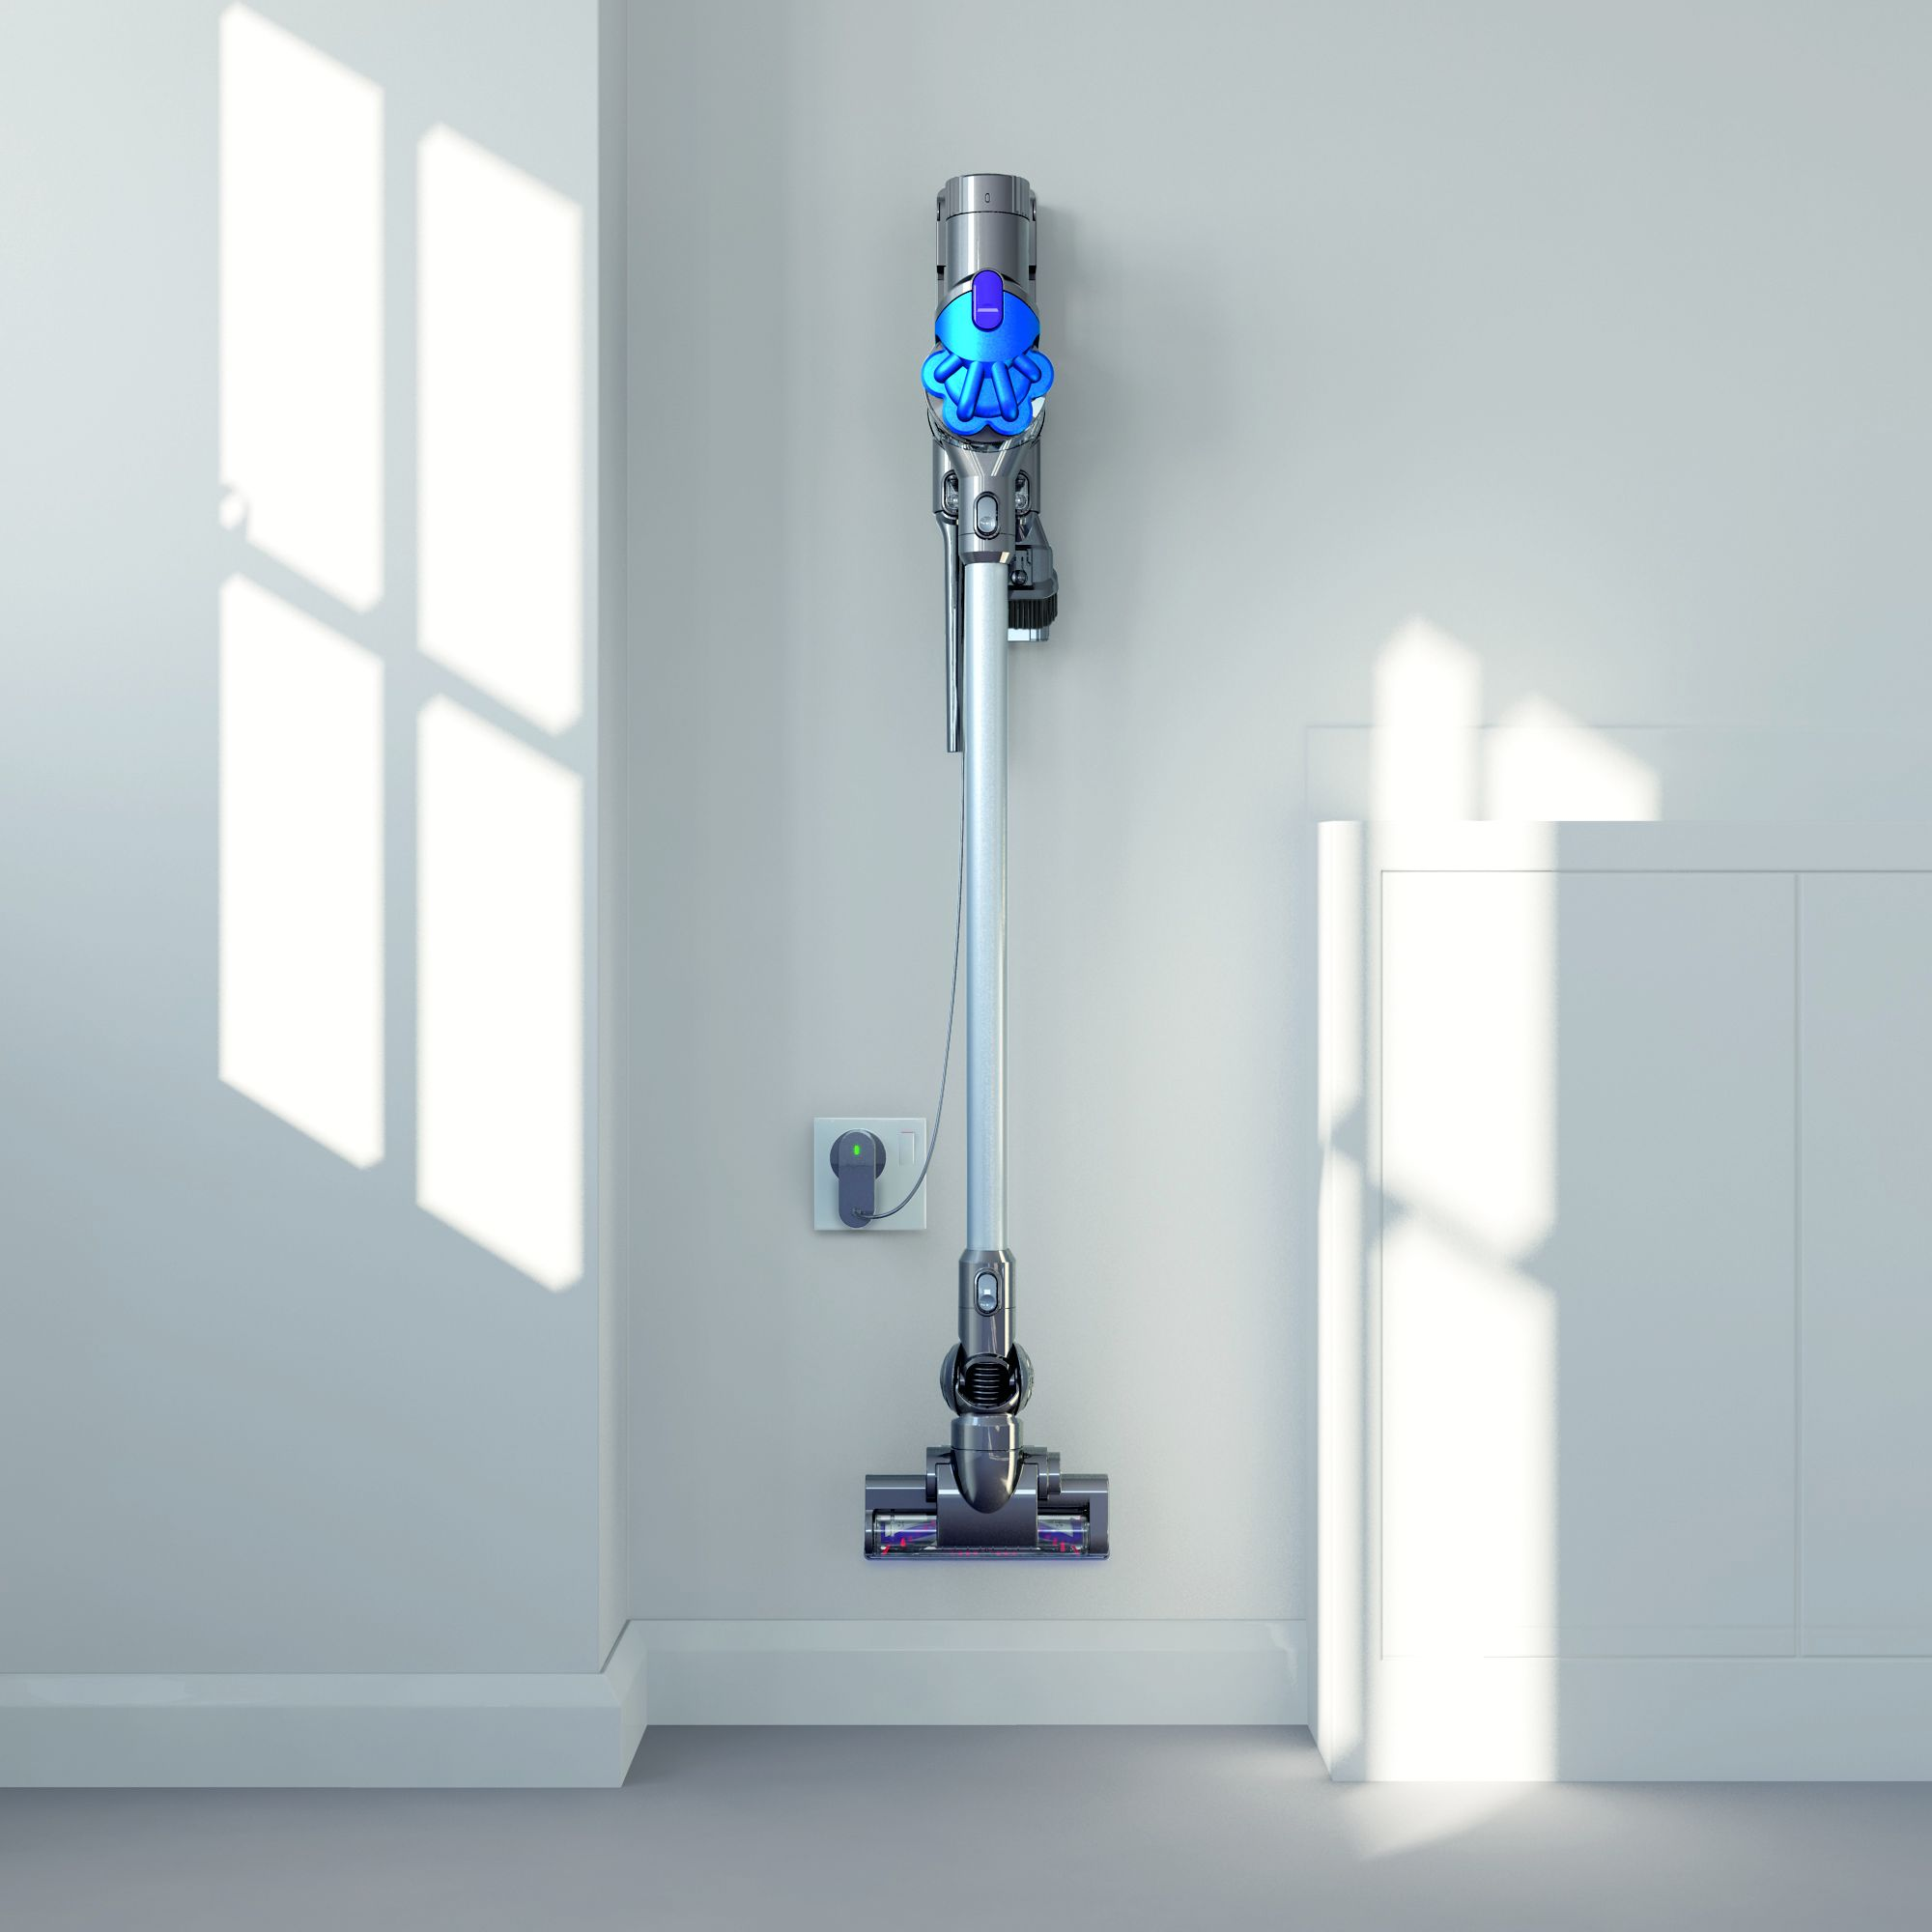 dyson dc35 wandhalterung akku handstaubsauger dyson digital slim dc35 multi floor modernste. Black Bedroom Furniture Sets. Home Design Ideas